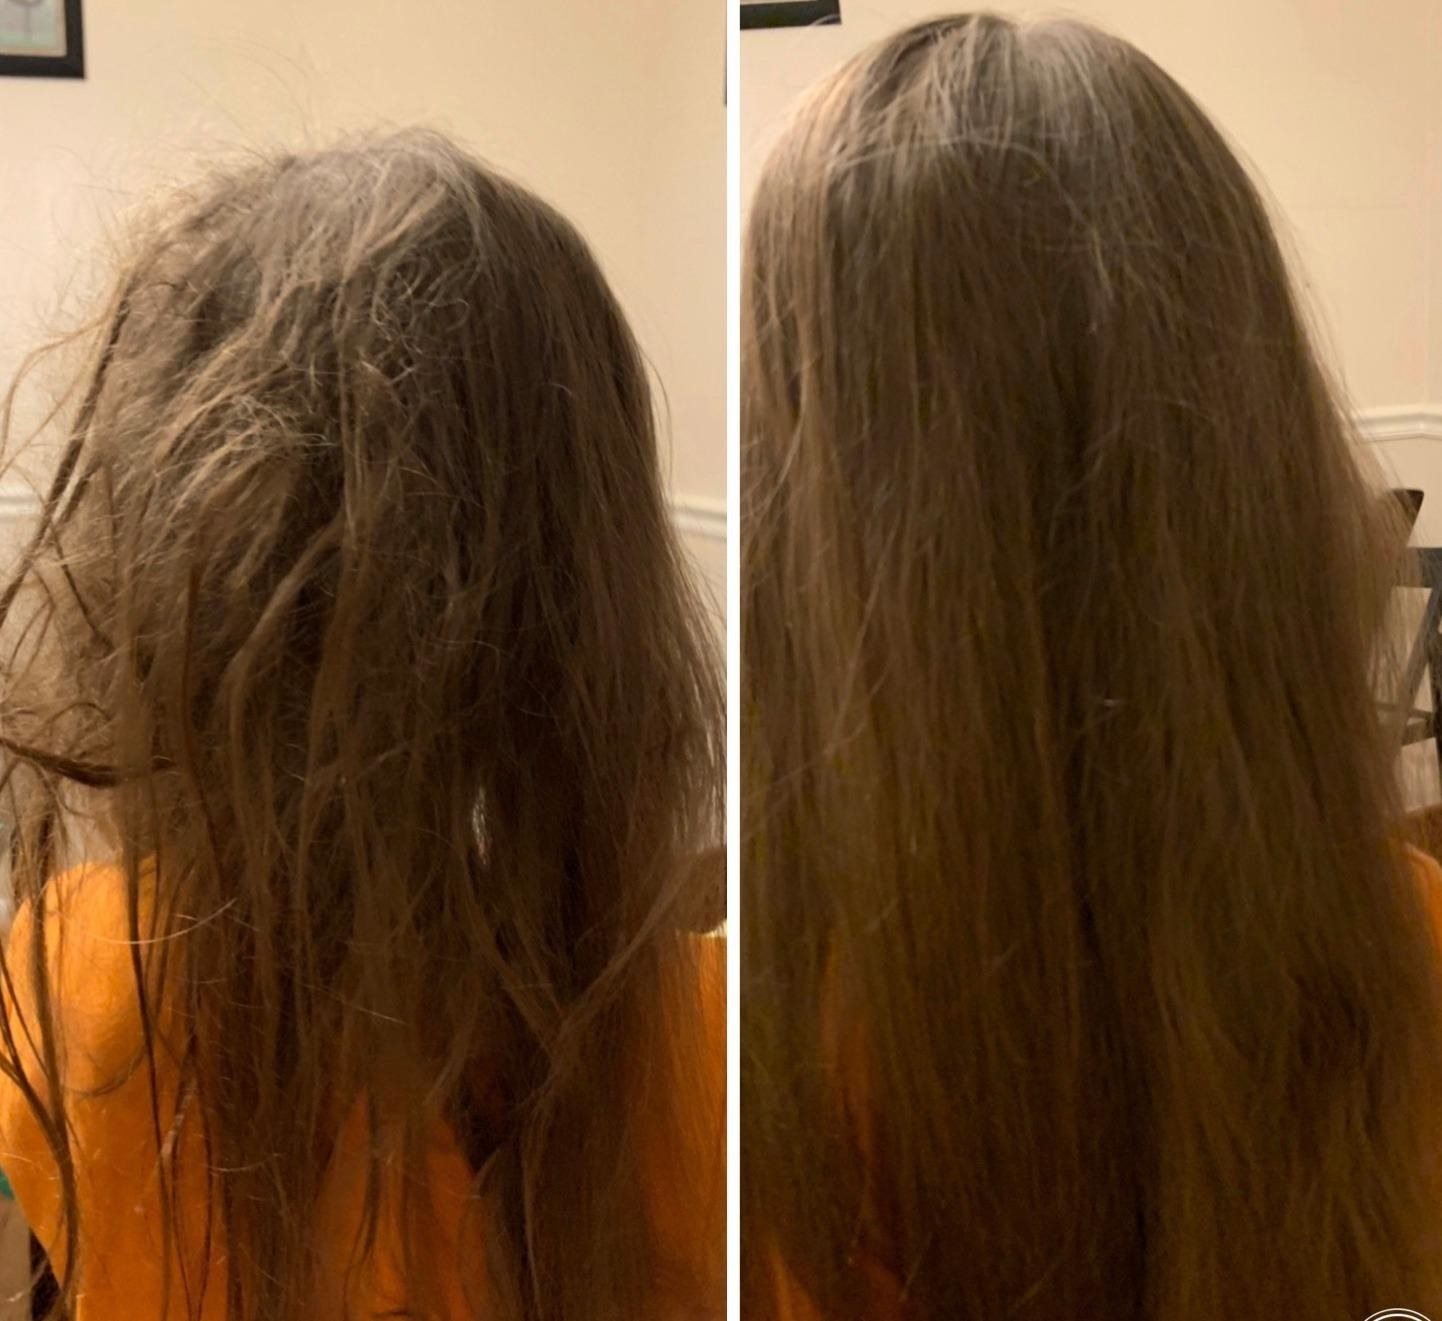 A reviewer with tangled hair before, and smooth, tangle-free hair after